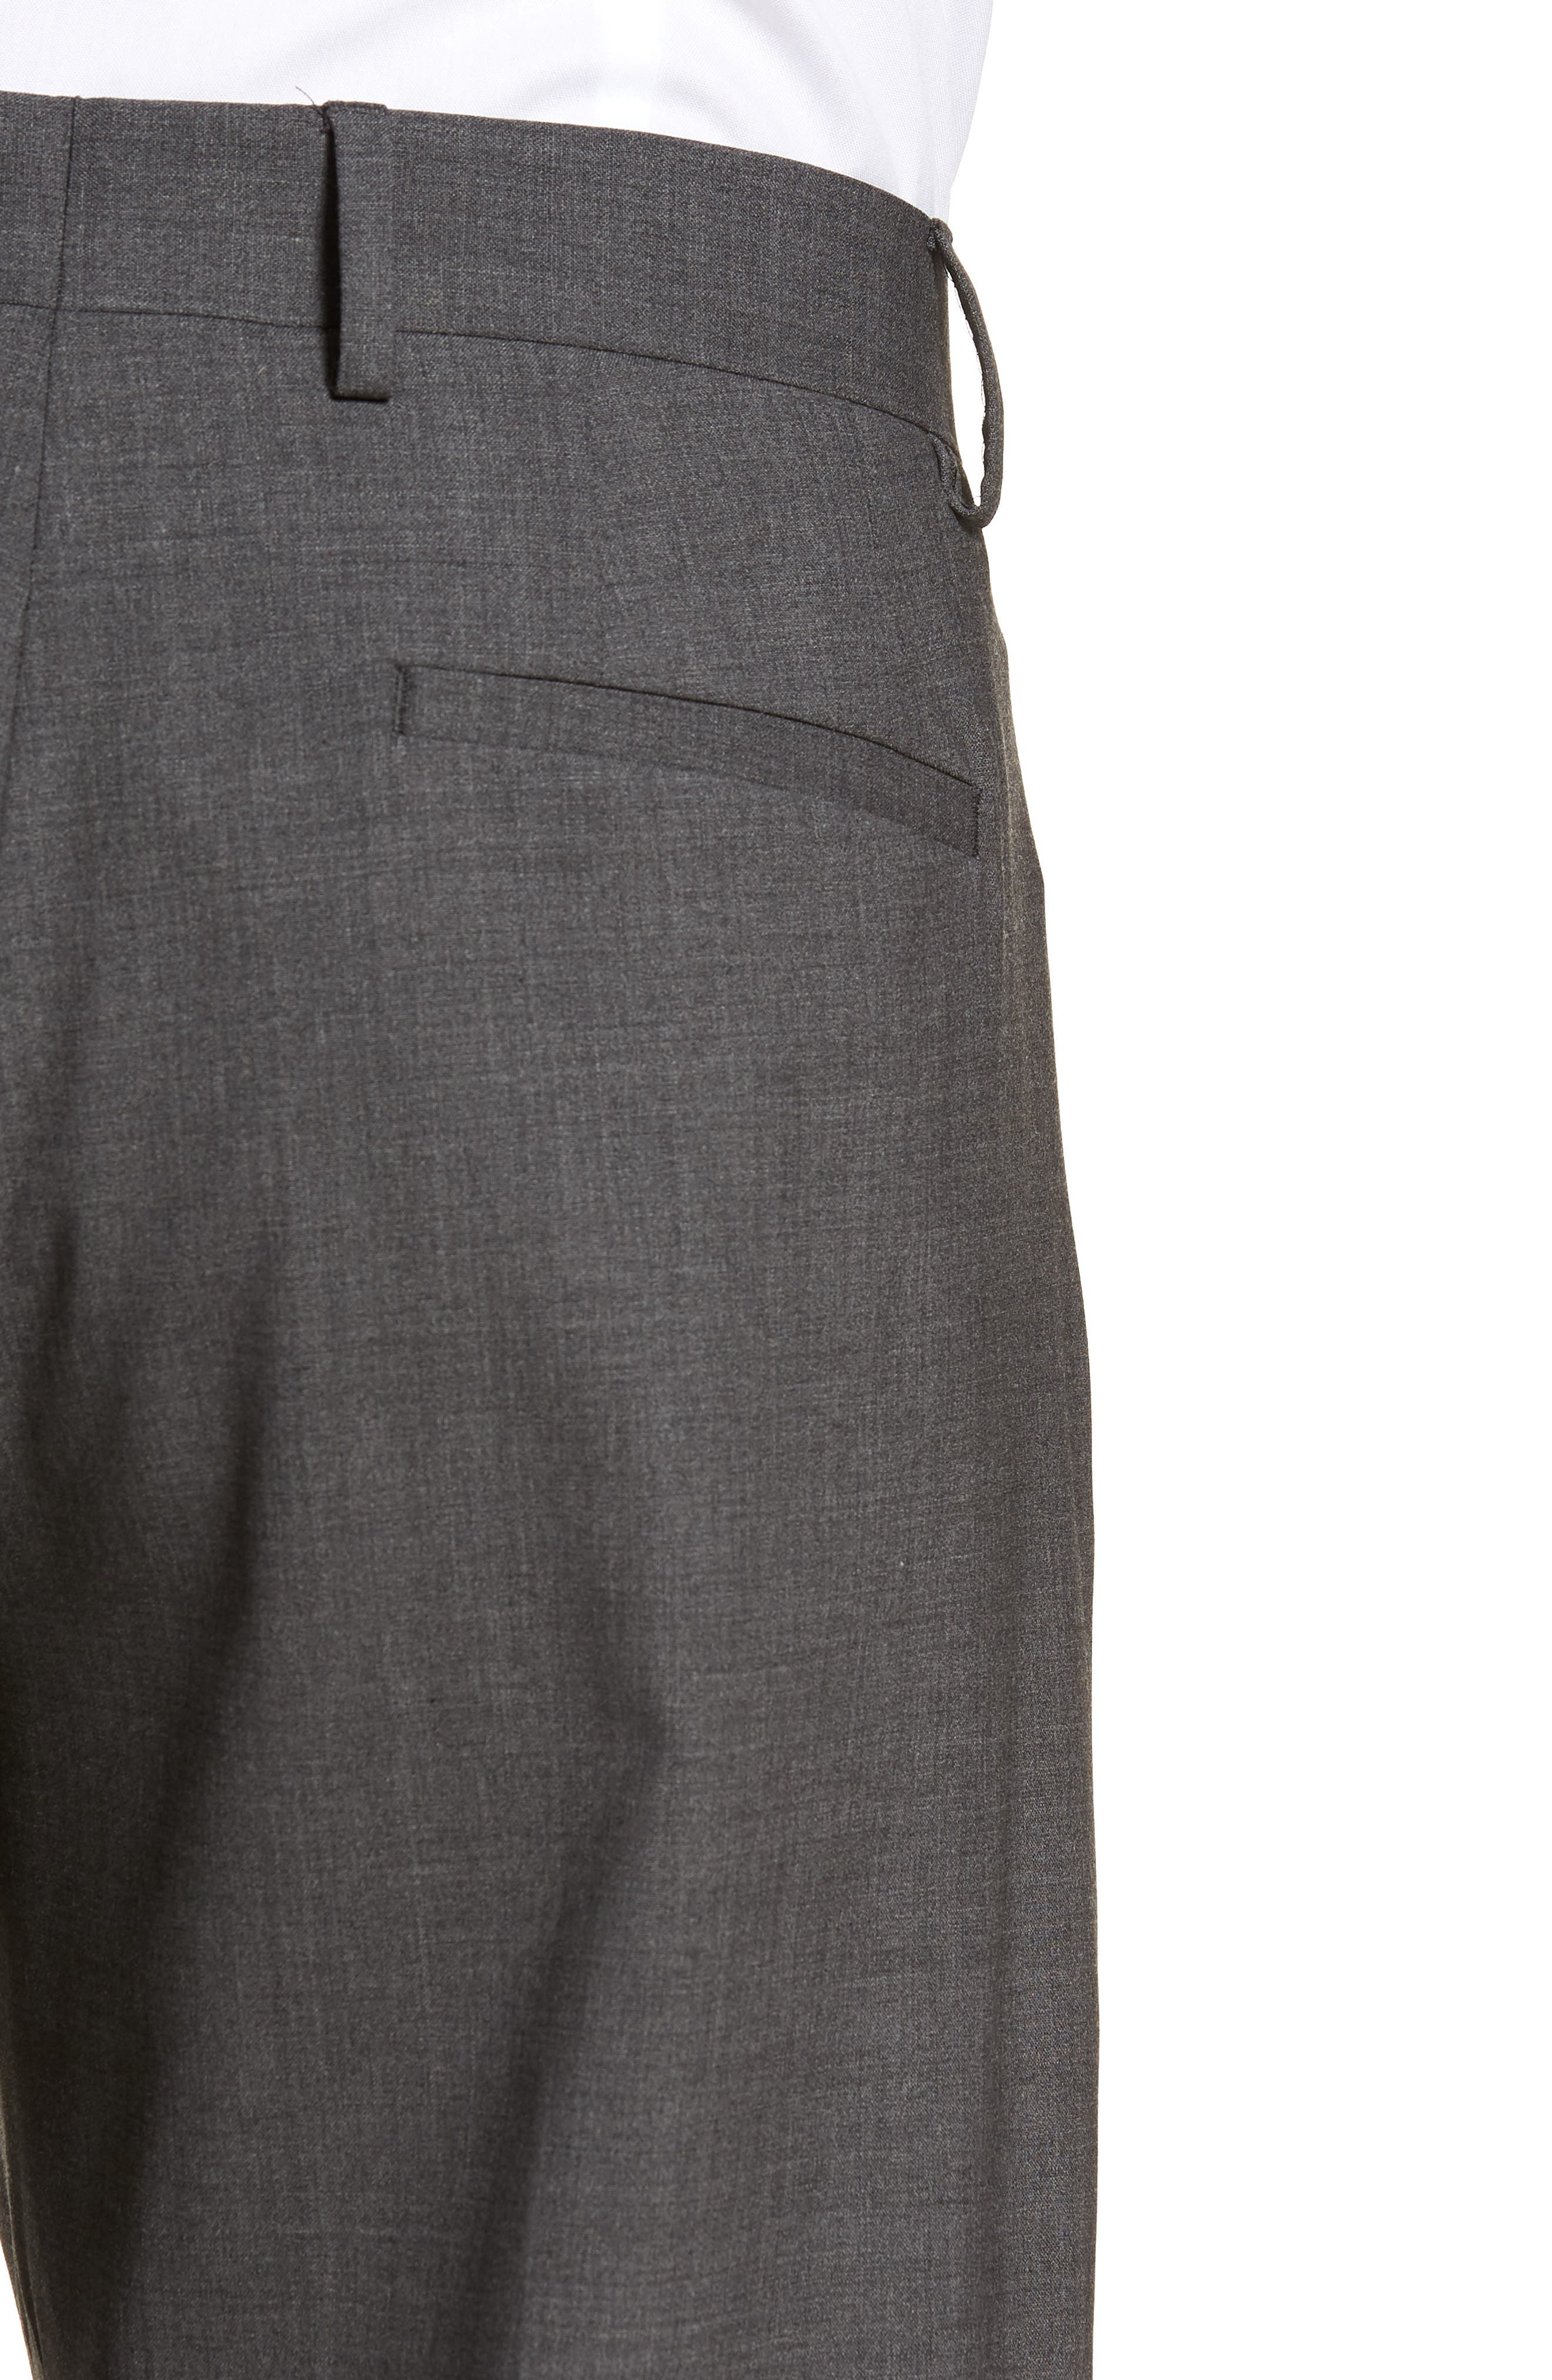 Pleat Front Stretch Solid Wool Trousers,                             Alternate thumbnail 4, color,                             024